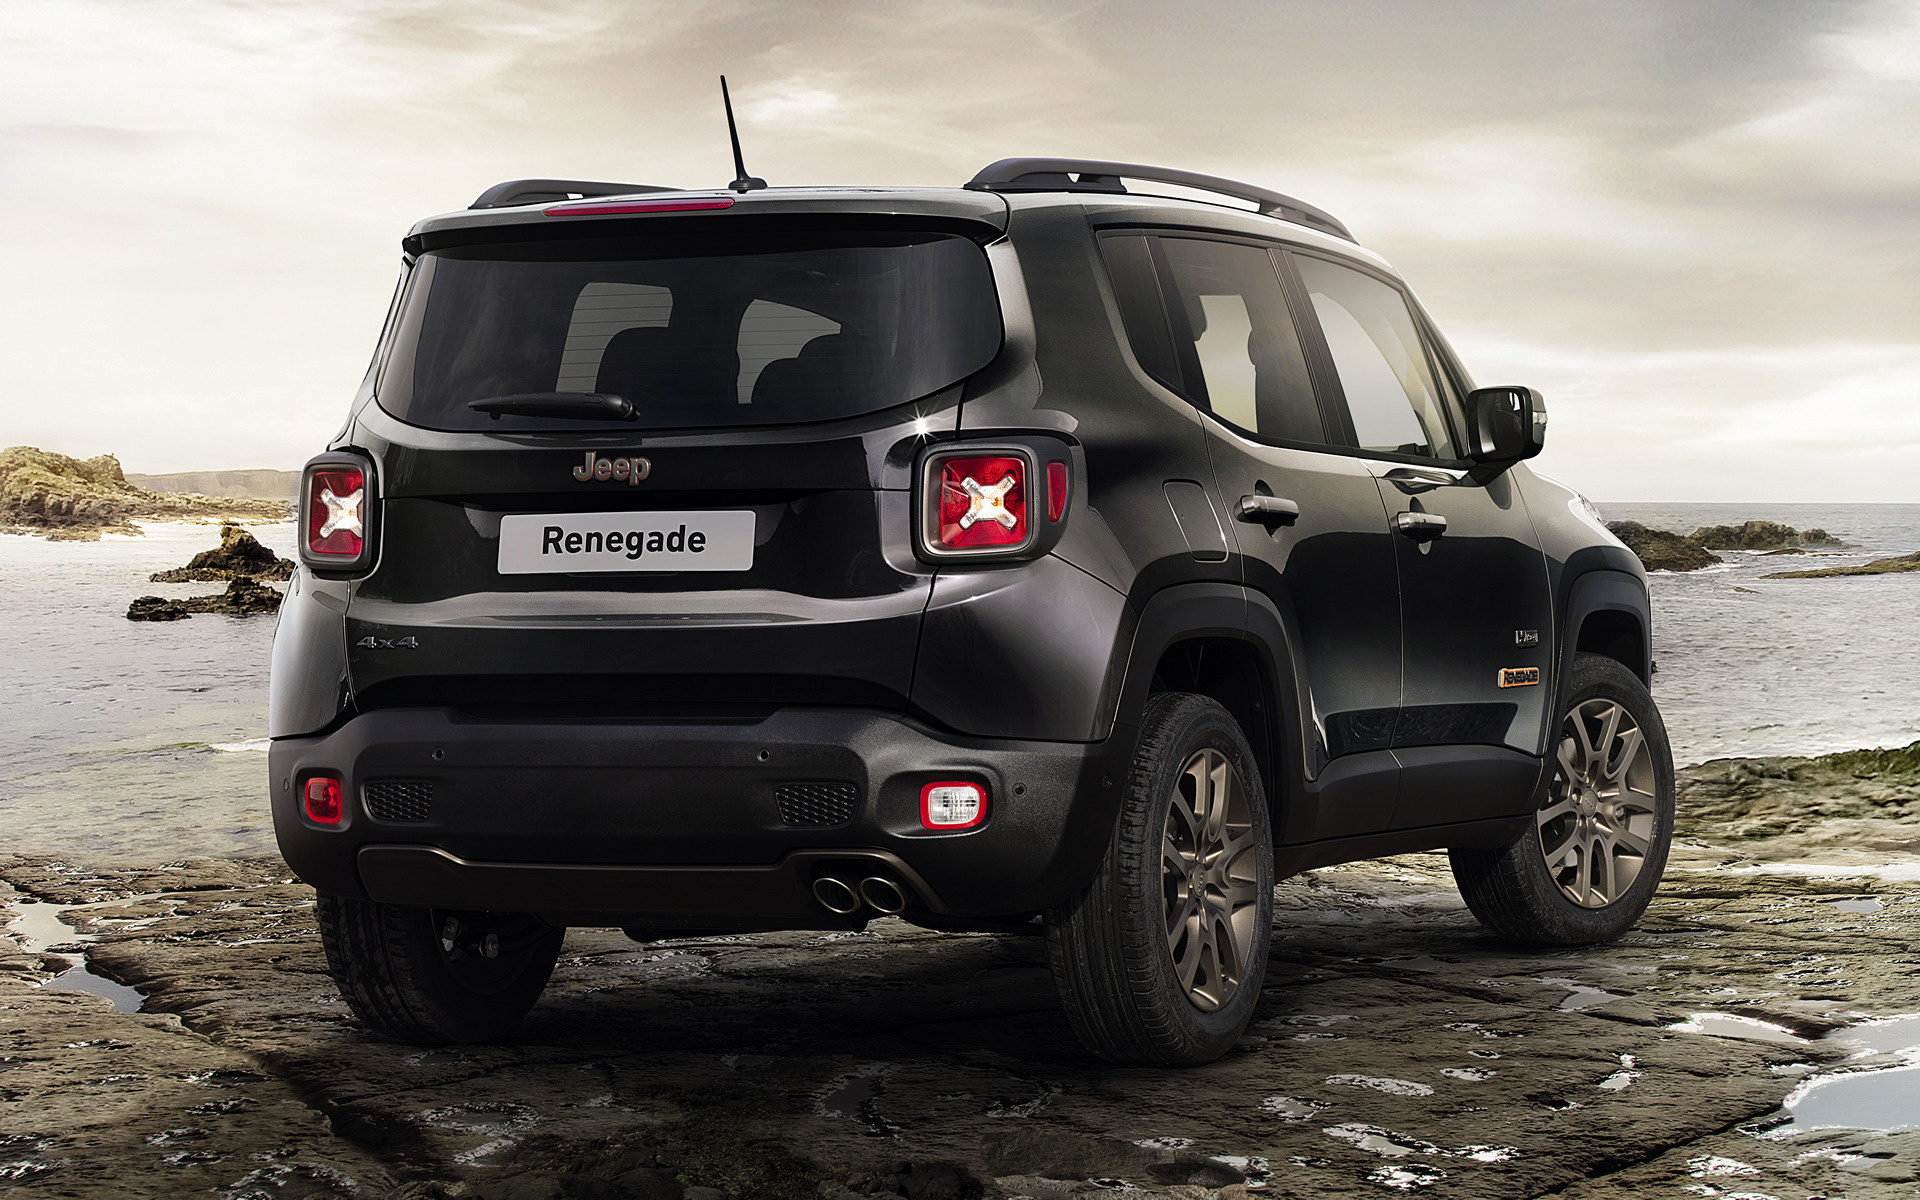 2016 Jeep Renegade 75th Anniversary Eu Wallpapers And